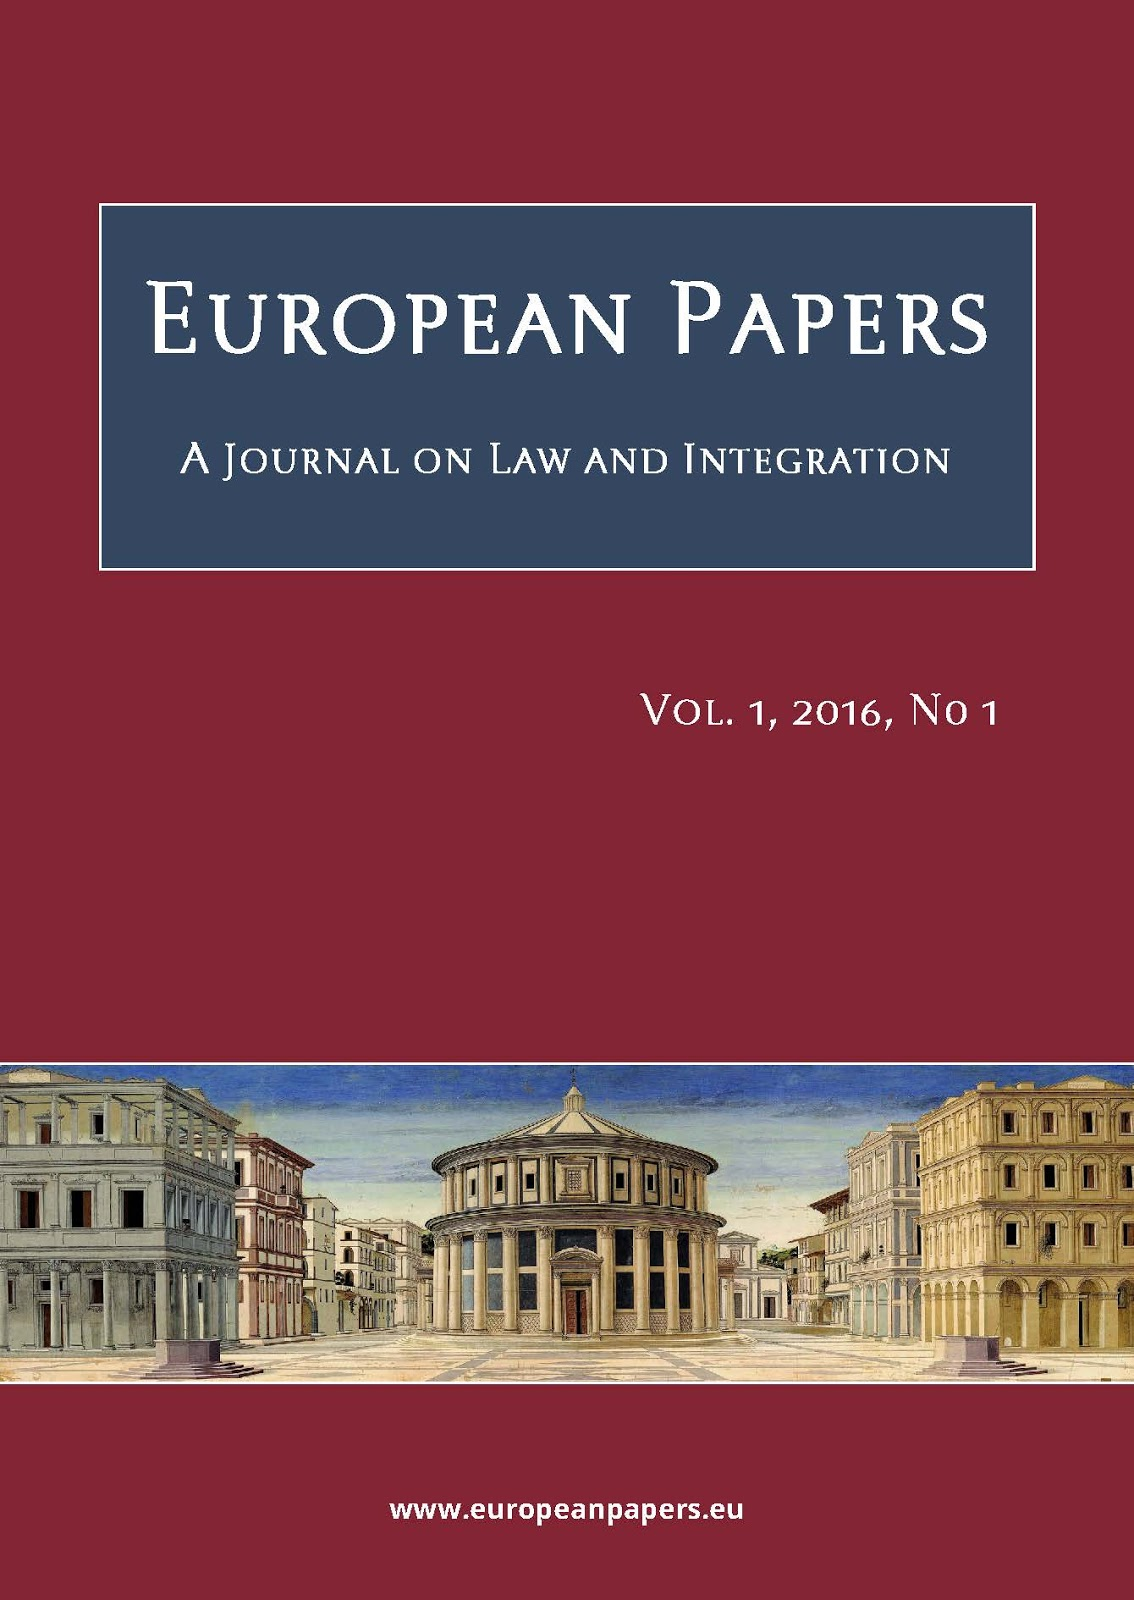 european integration 2 essay Assimilation and integration of immigrants in europe this paper documents assimilation of immigrants in european destinations along cultural, civic, and economic dimensions, distinguishing by immigrants' generation, duration of stay.